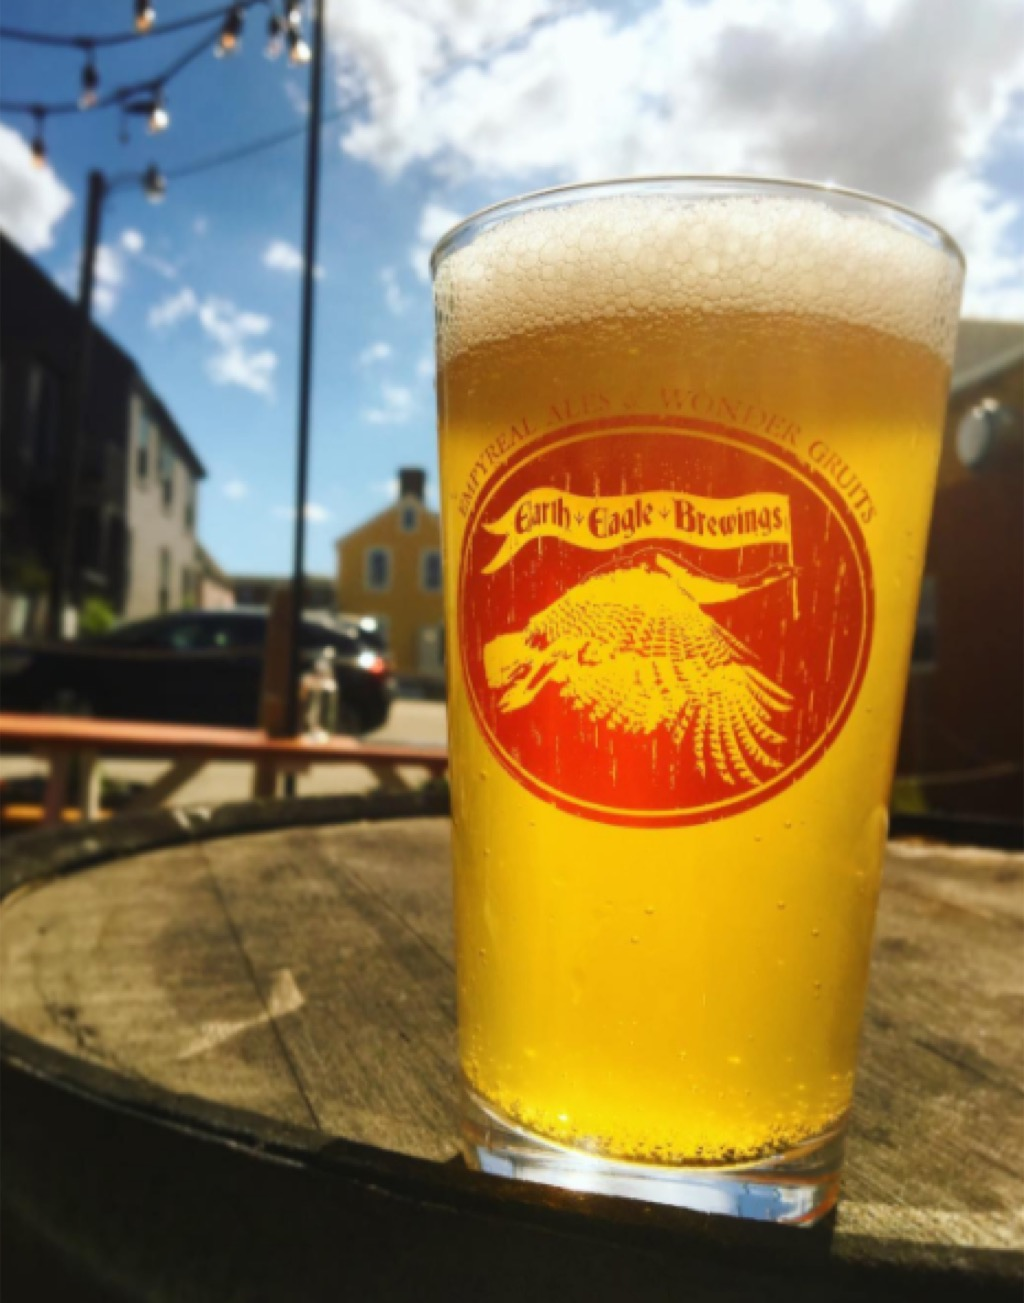 Craft beer, New Hampshire, Earth Eagle Brewings